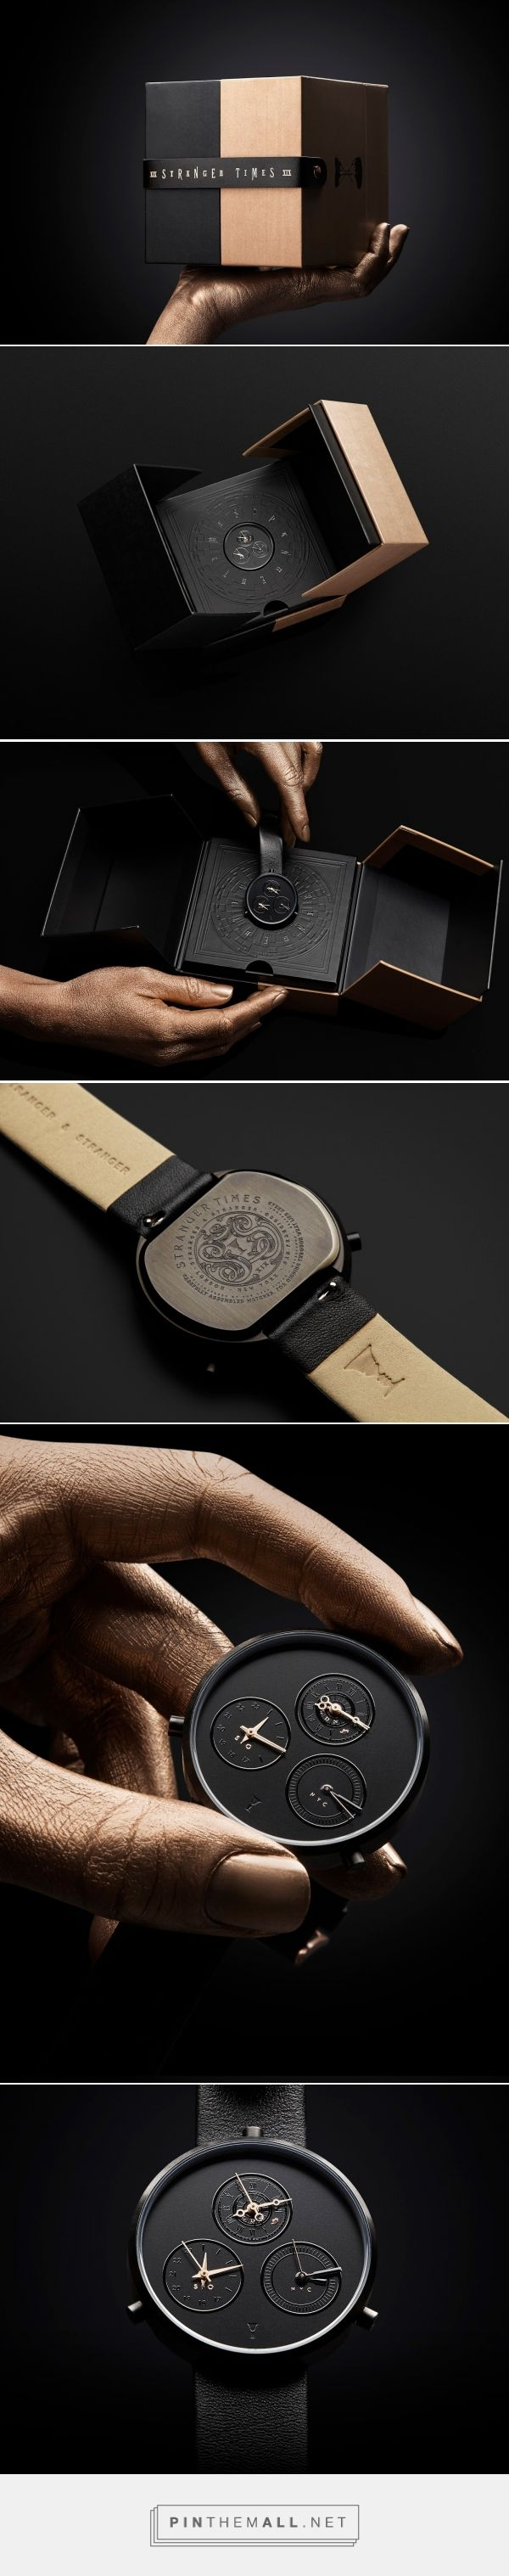 Stranger Times watch packaging design by Stranger & Stranger - http://www.packagingoftheworld.com/2018/01/stranger-times.html